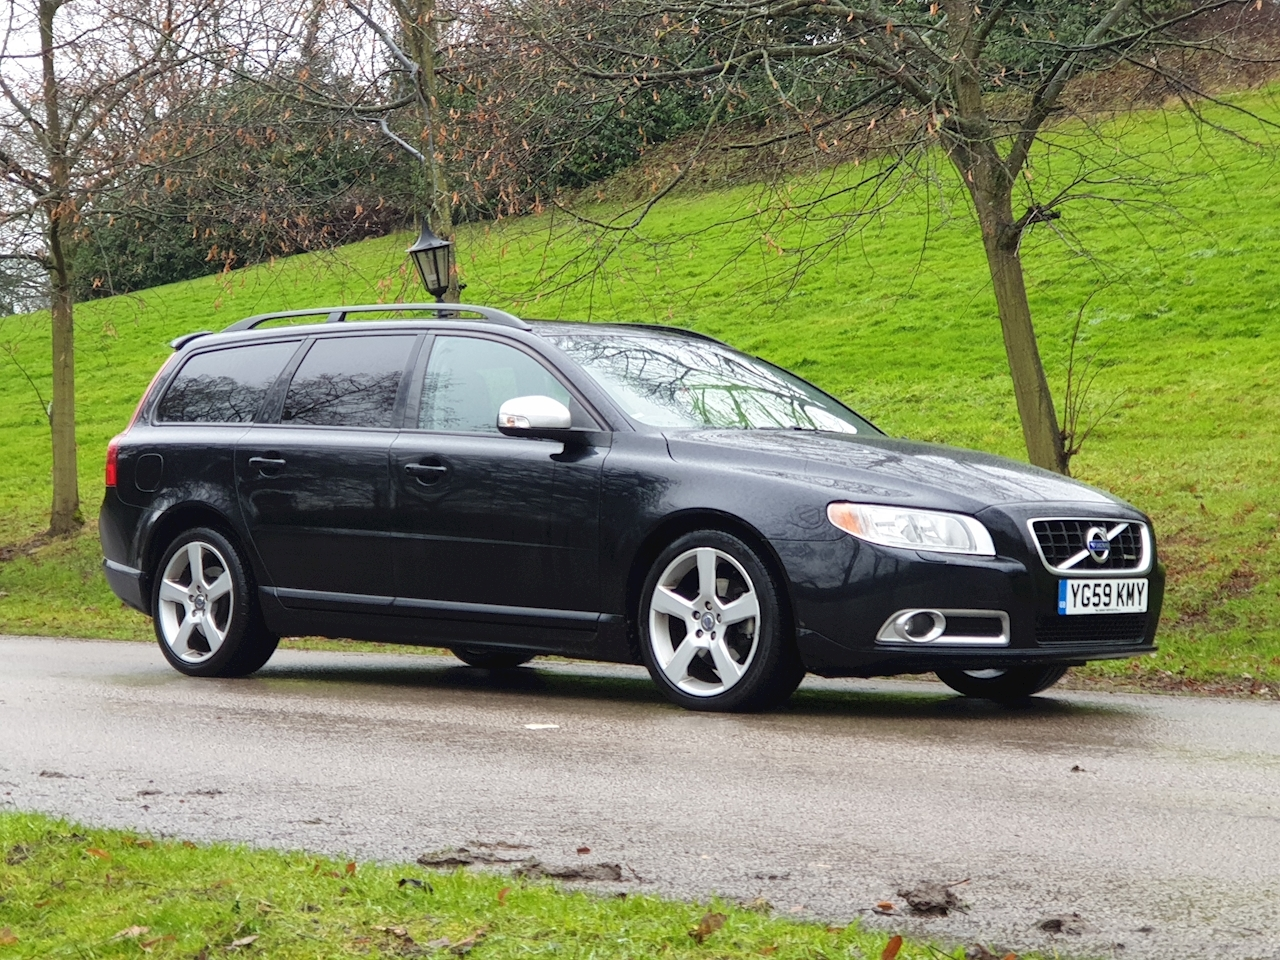 2.0 D R-Design SE Estate 5dr Diesel Manual (157 g/km, 134 bhp)